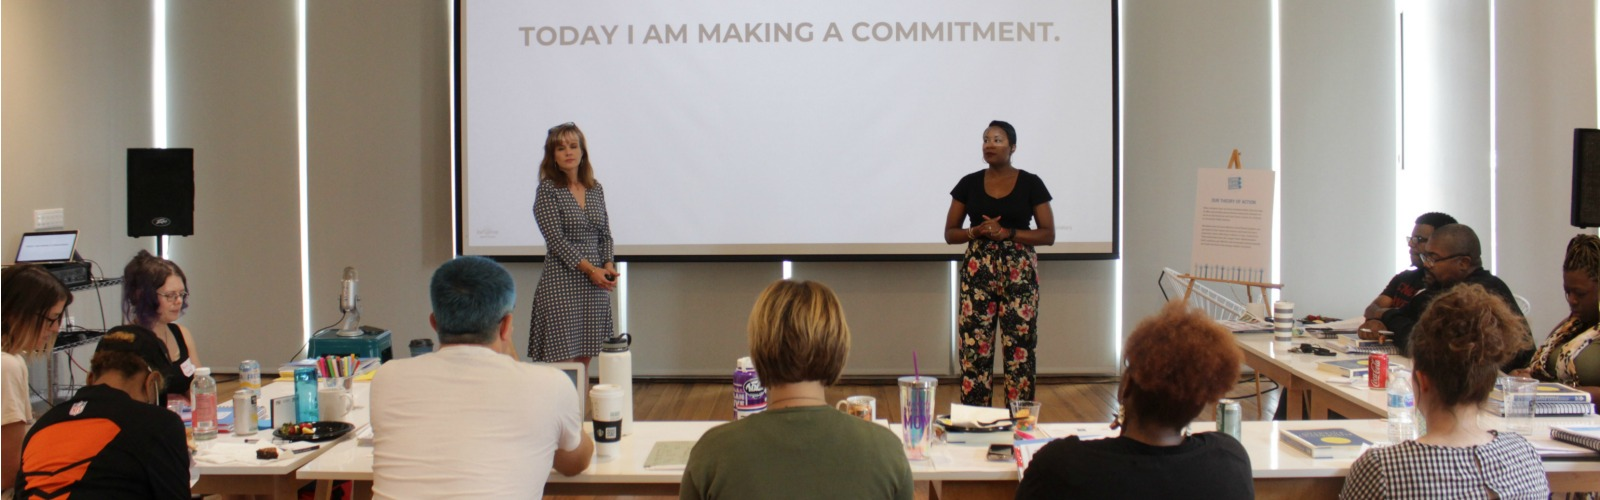 Consultants Marion Hodges Biglan and Jovian Zayne start by helping participants articulate their reasons for attending and potential positive outcomes. <span class=&apos;image-credits&apos;>Provided</span>